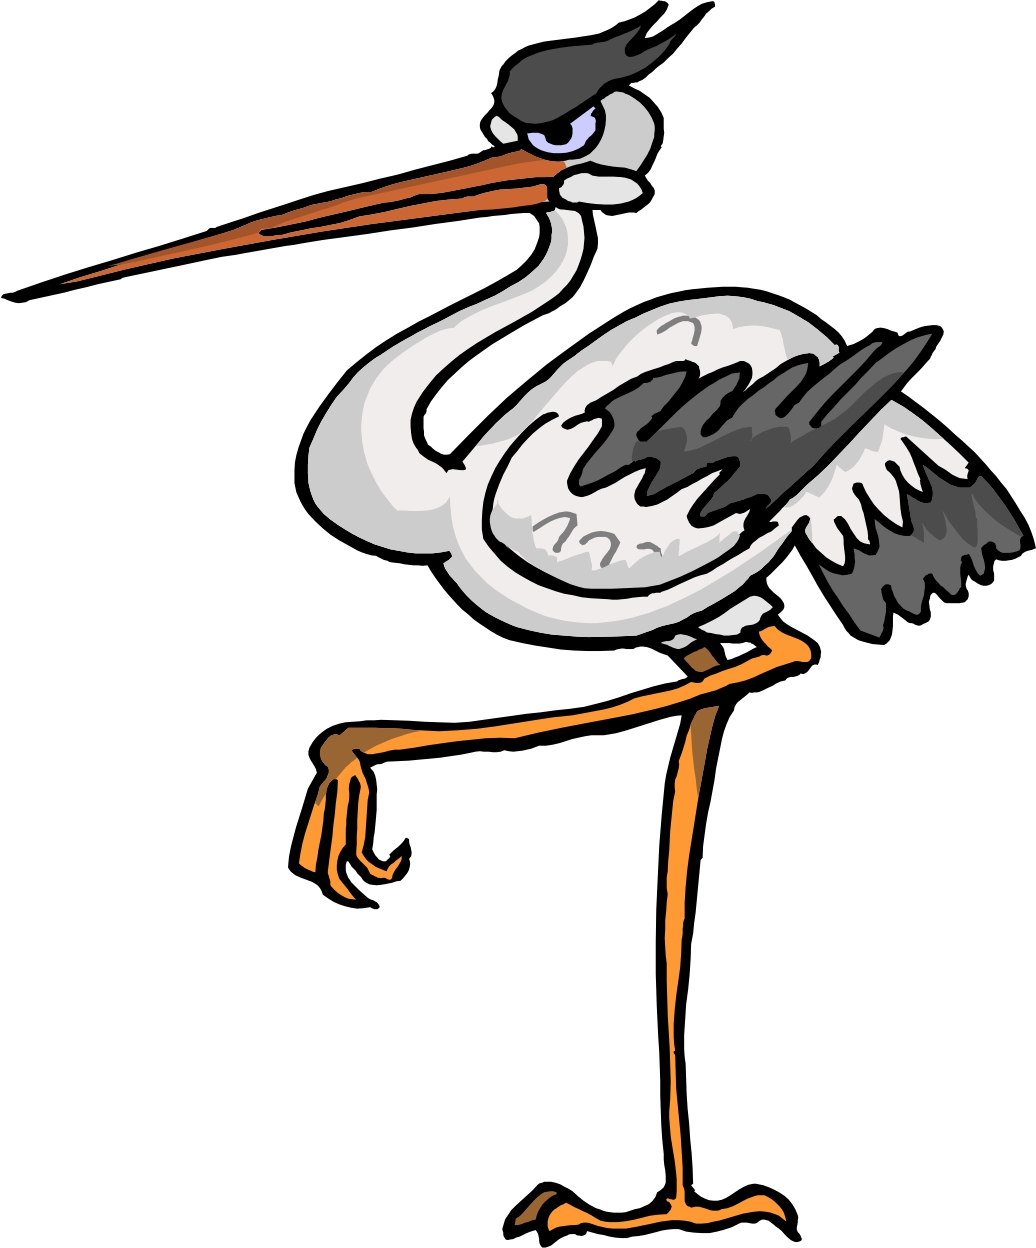 1036x1248 Explore Cartoon Stork